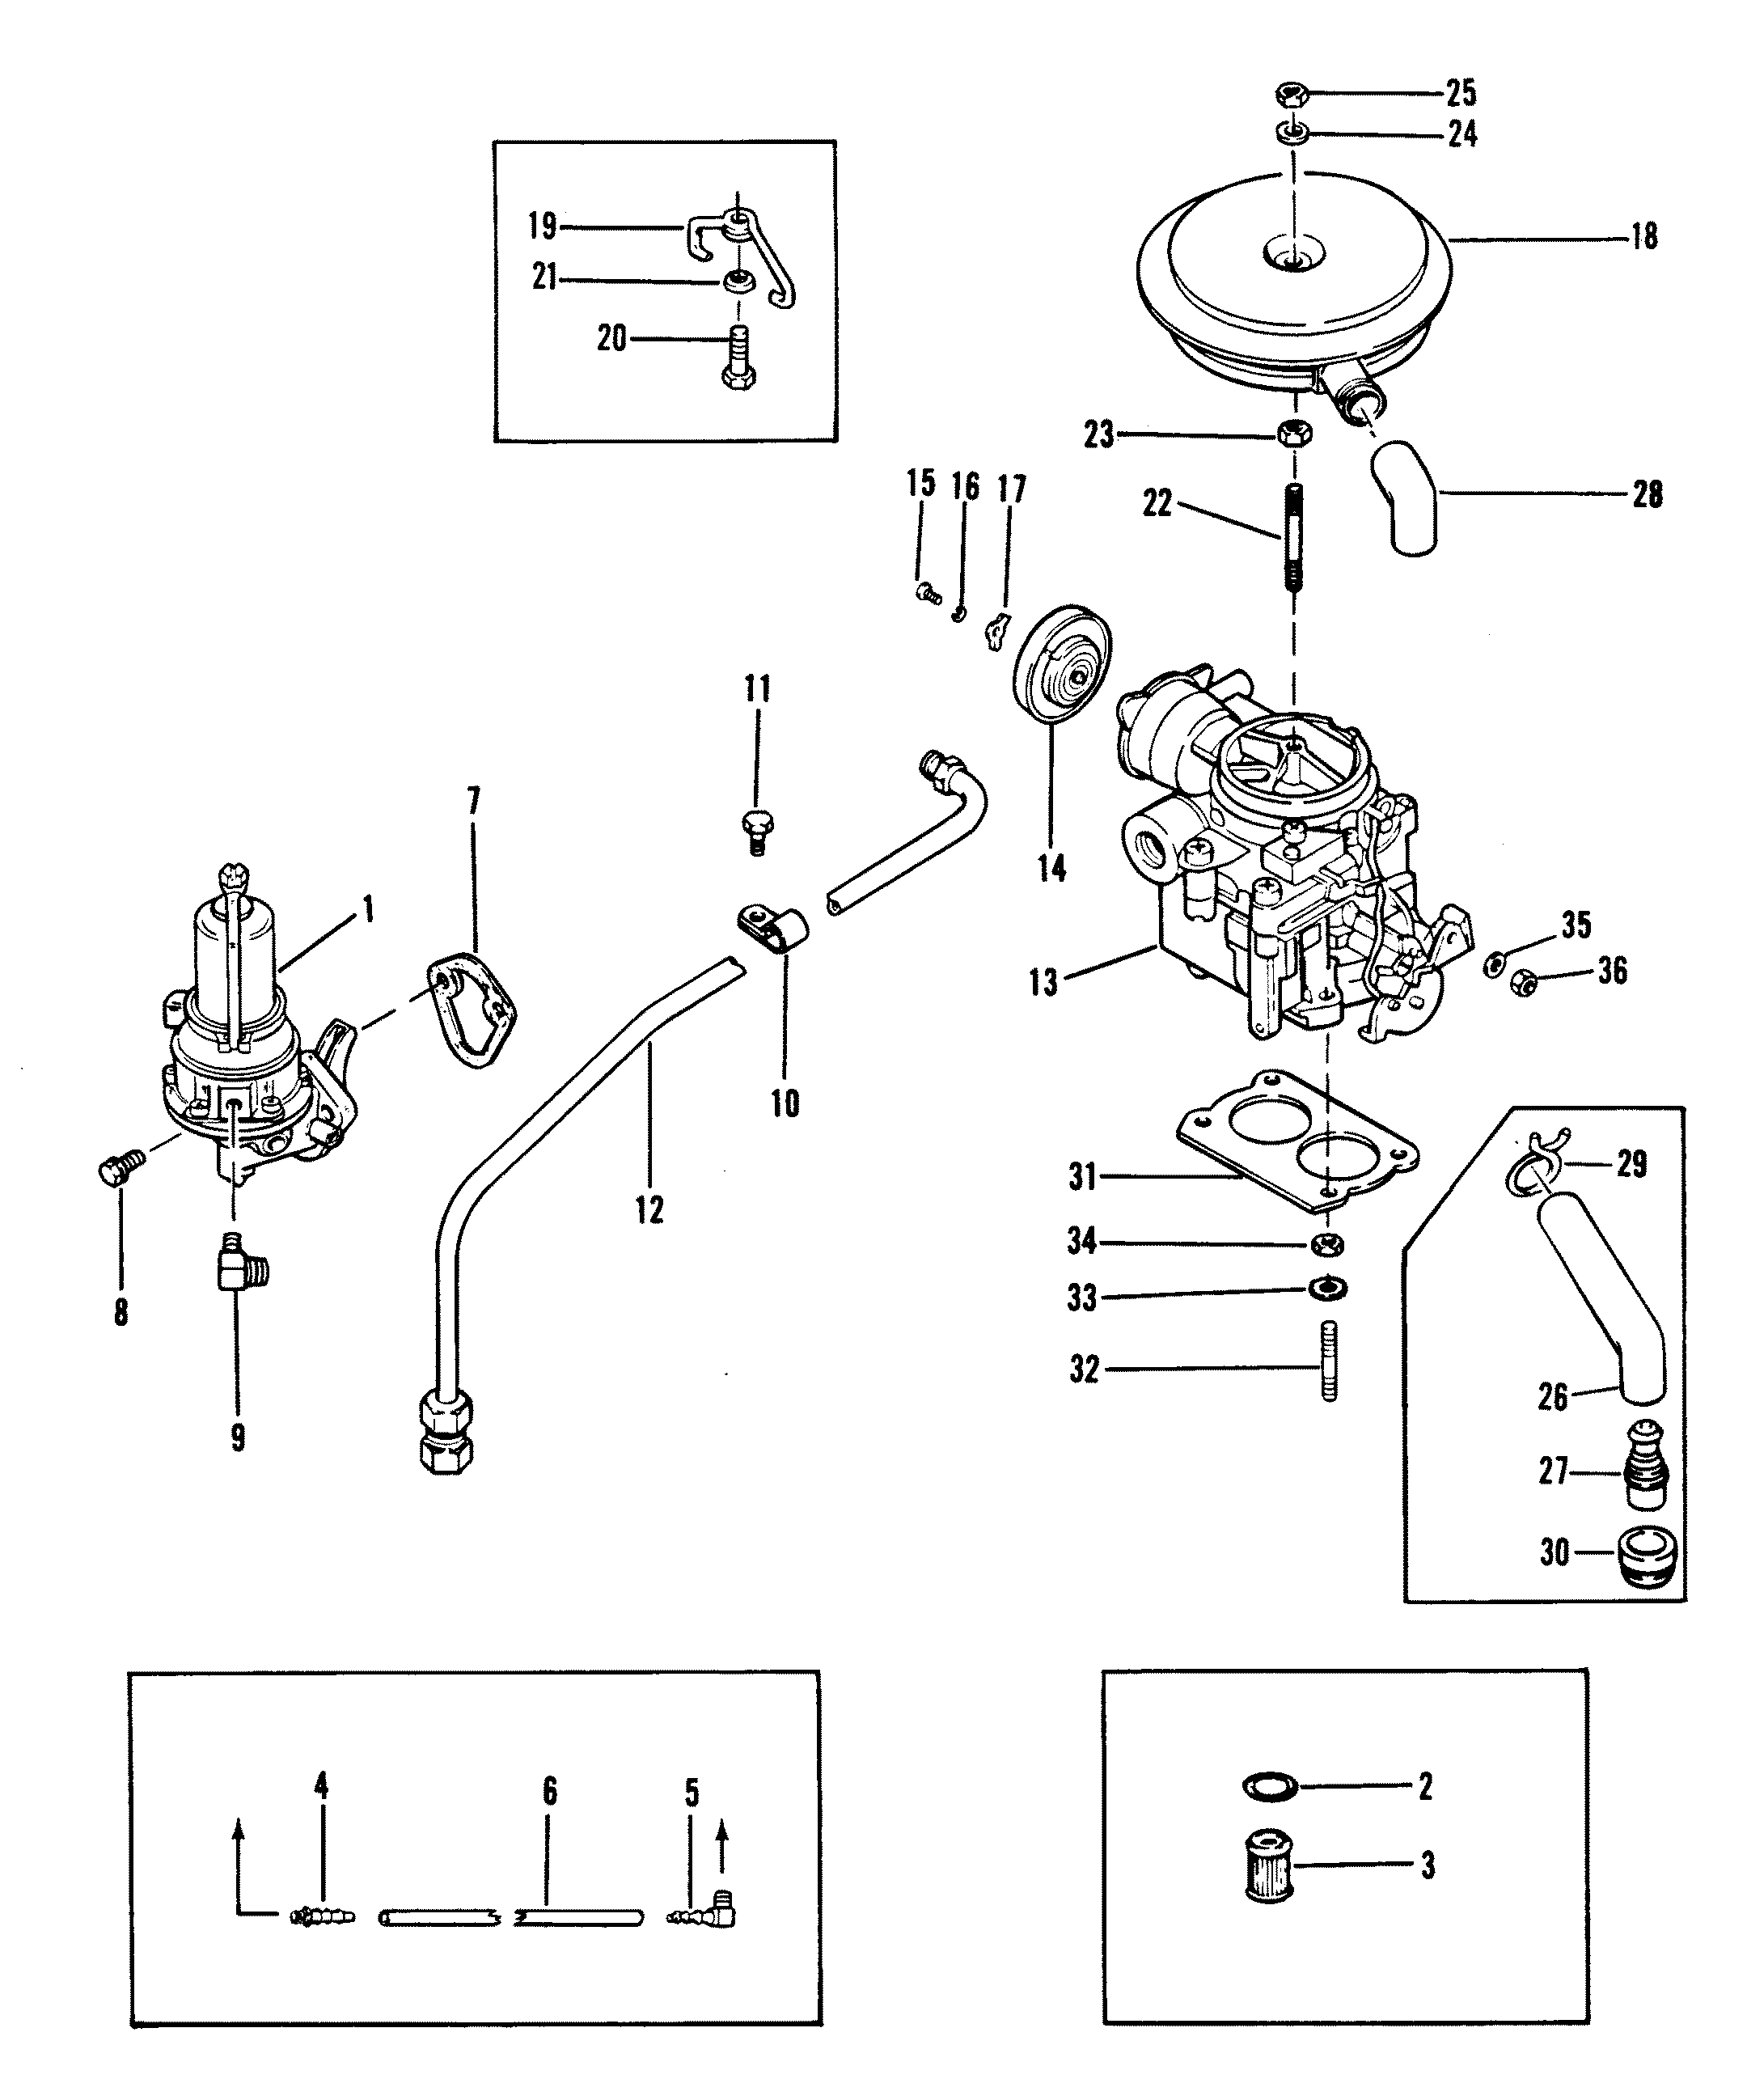 fuel pump and carburetor old design for mercruiser 120 h p